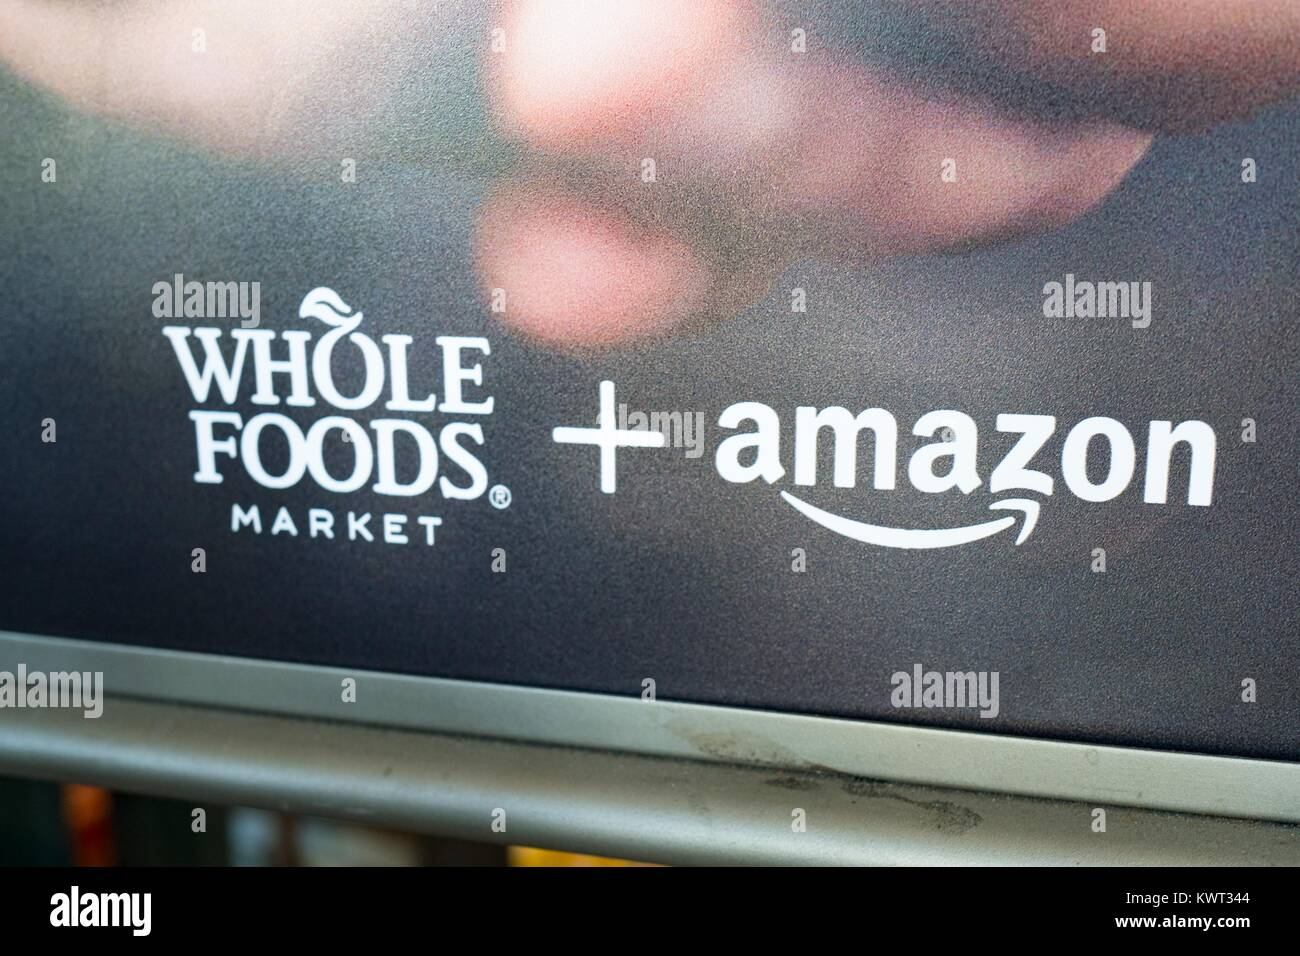 Signage at the Whole Foods Market store in San Ramon, California reading 'Whole Foods Market and Amazon', - Stock Image